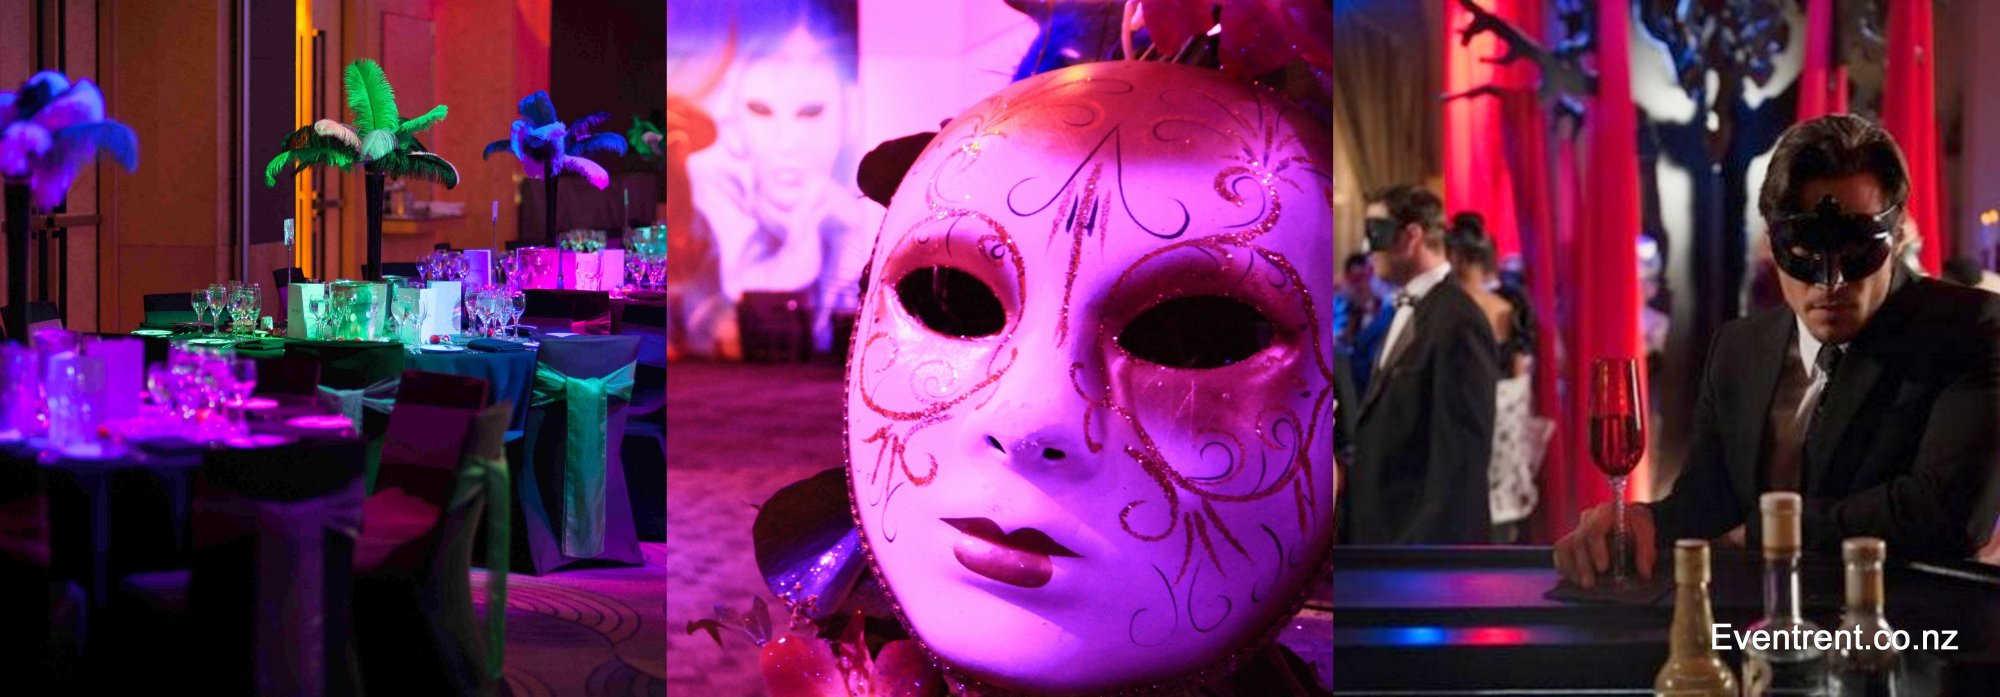 Masquerade Ball - Themed Event